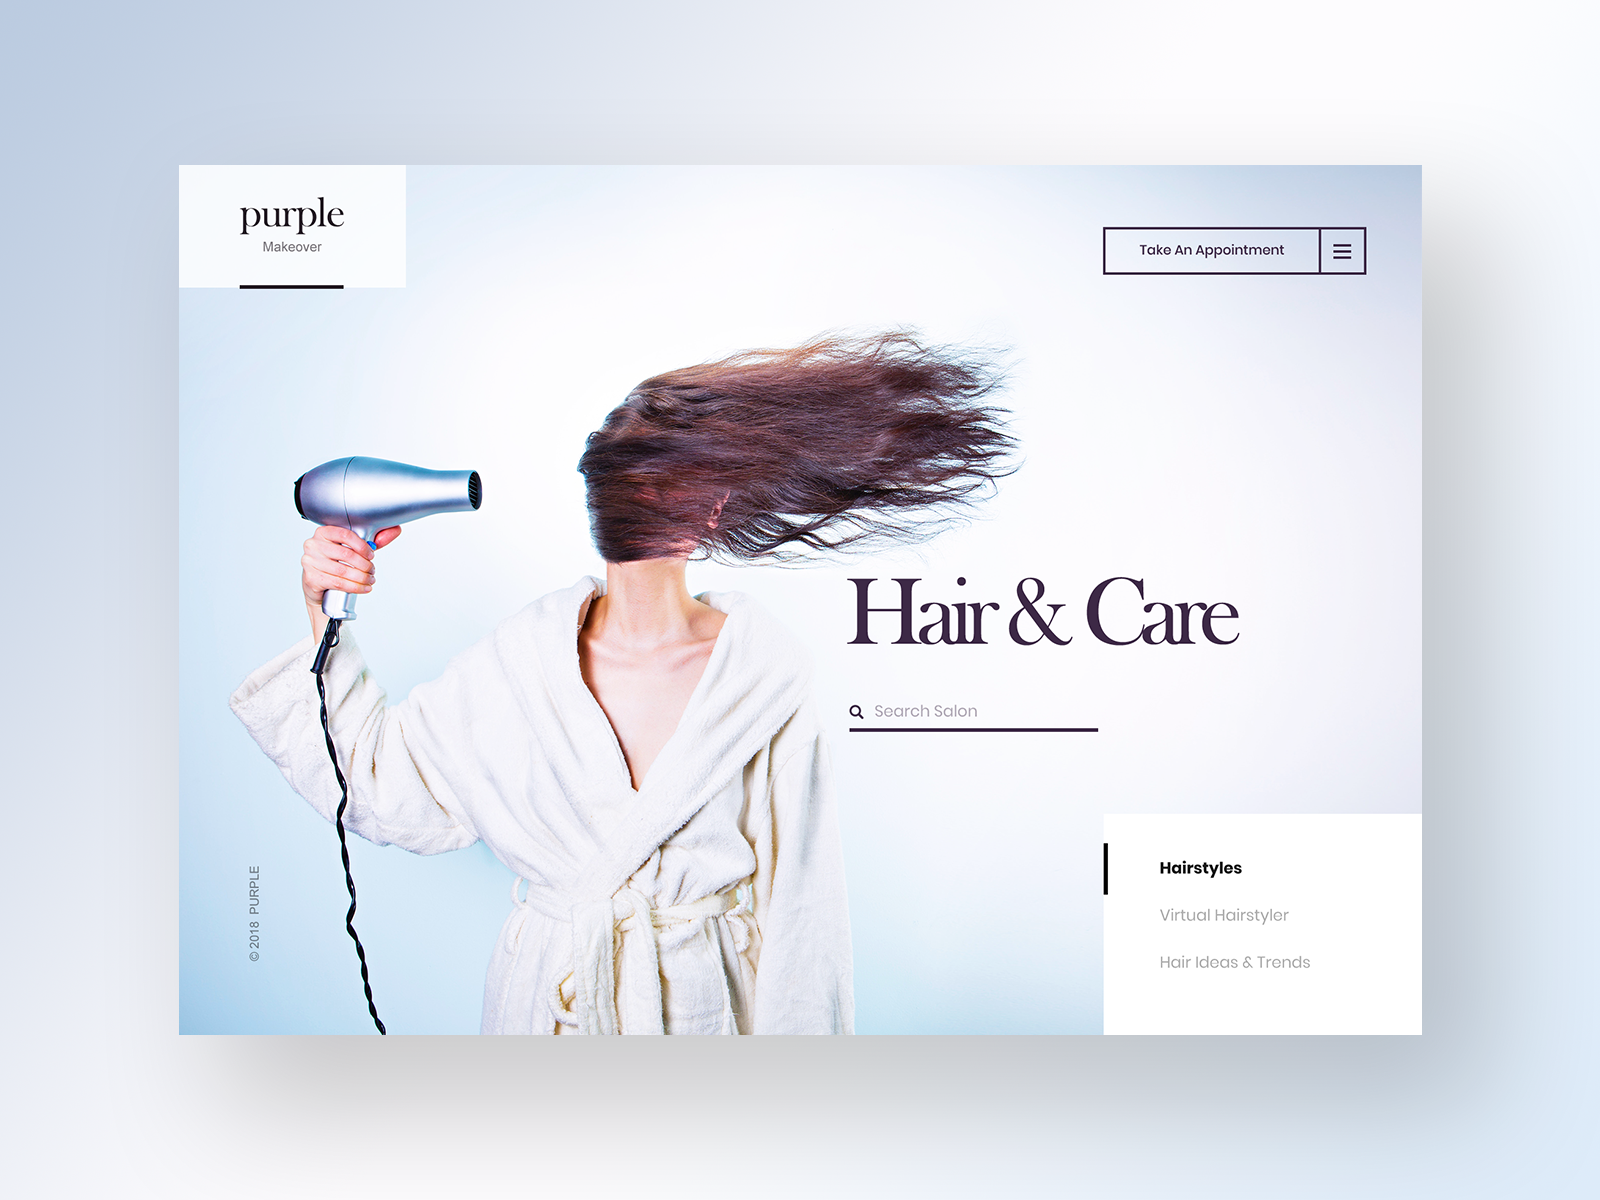 Hairstylist Website Example #2